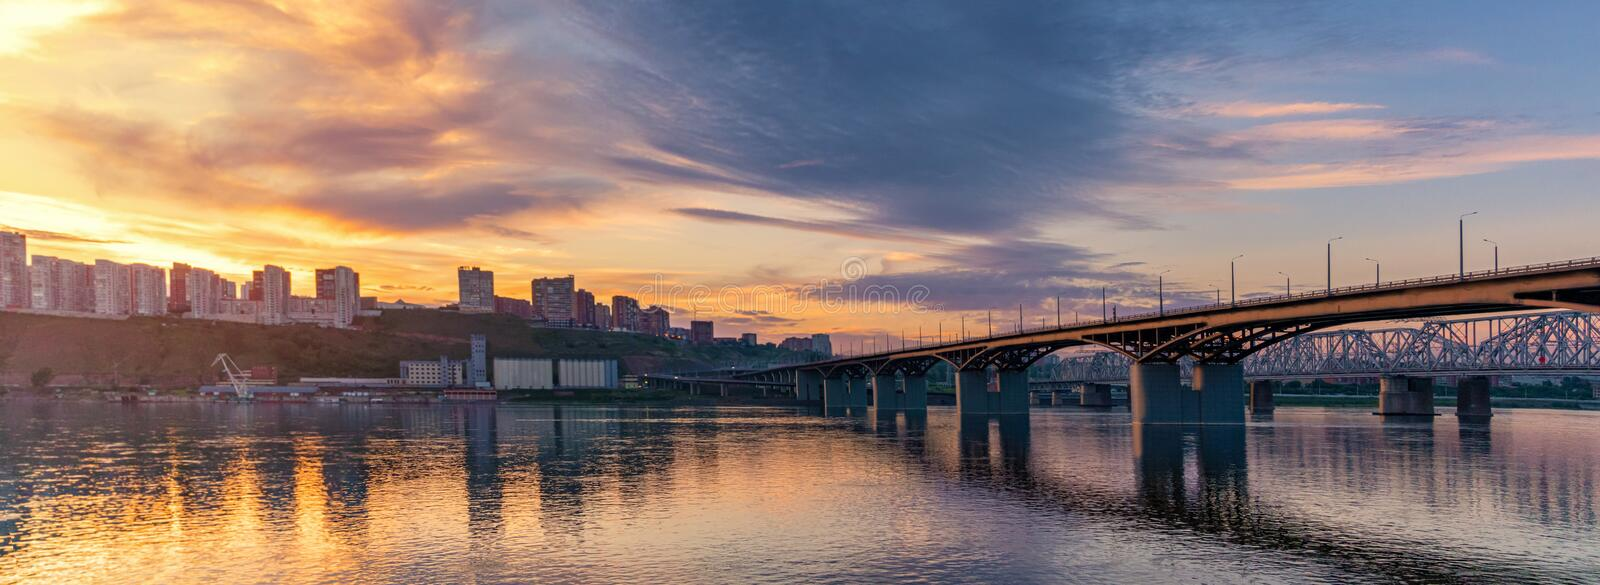 Bridge over the Yenisei river, evening sunset. Krasnoyarsk, Russia. panorama of the evening city stock image